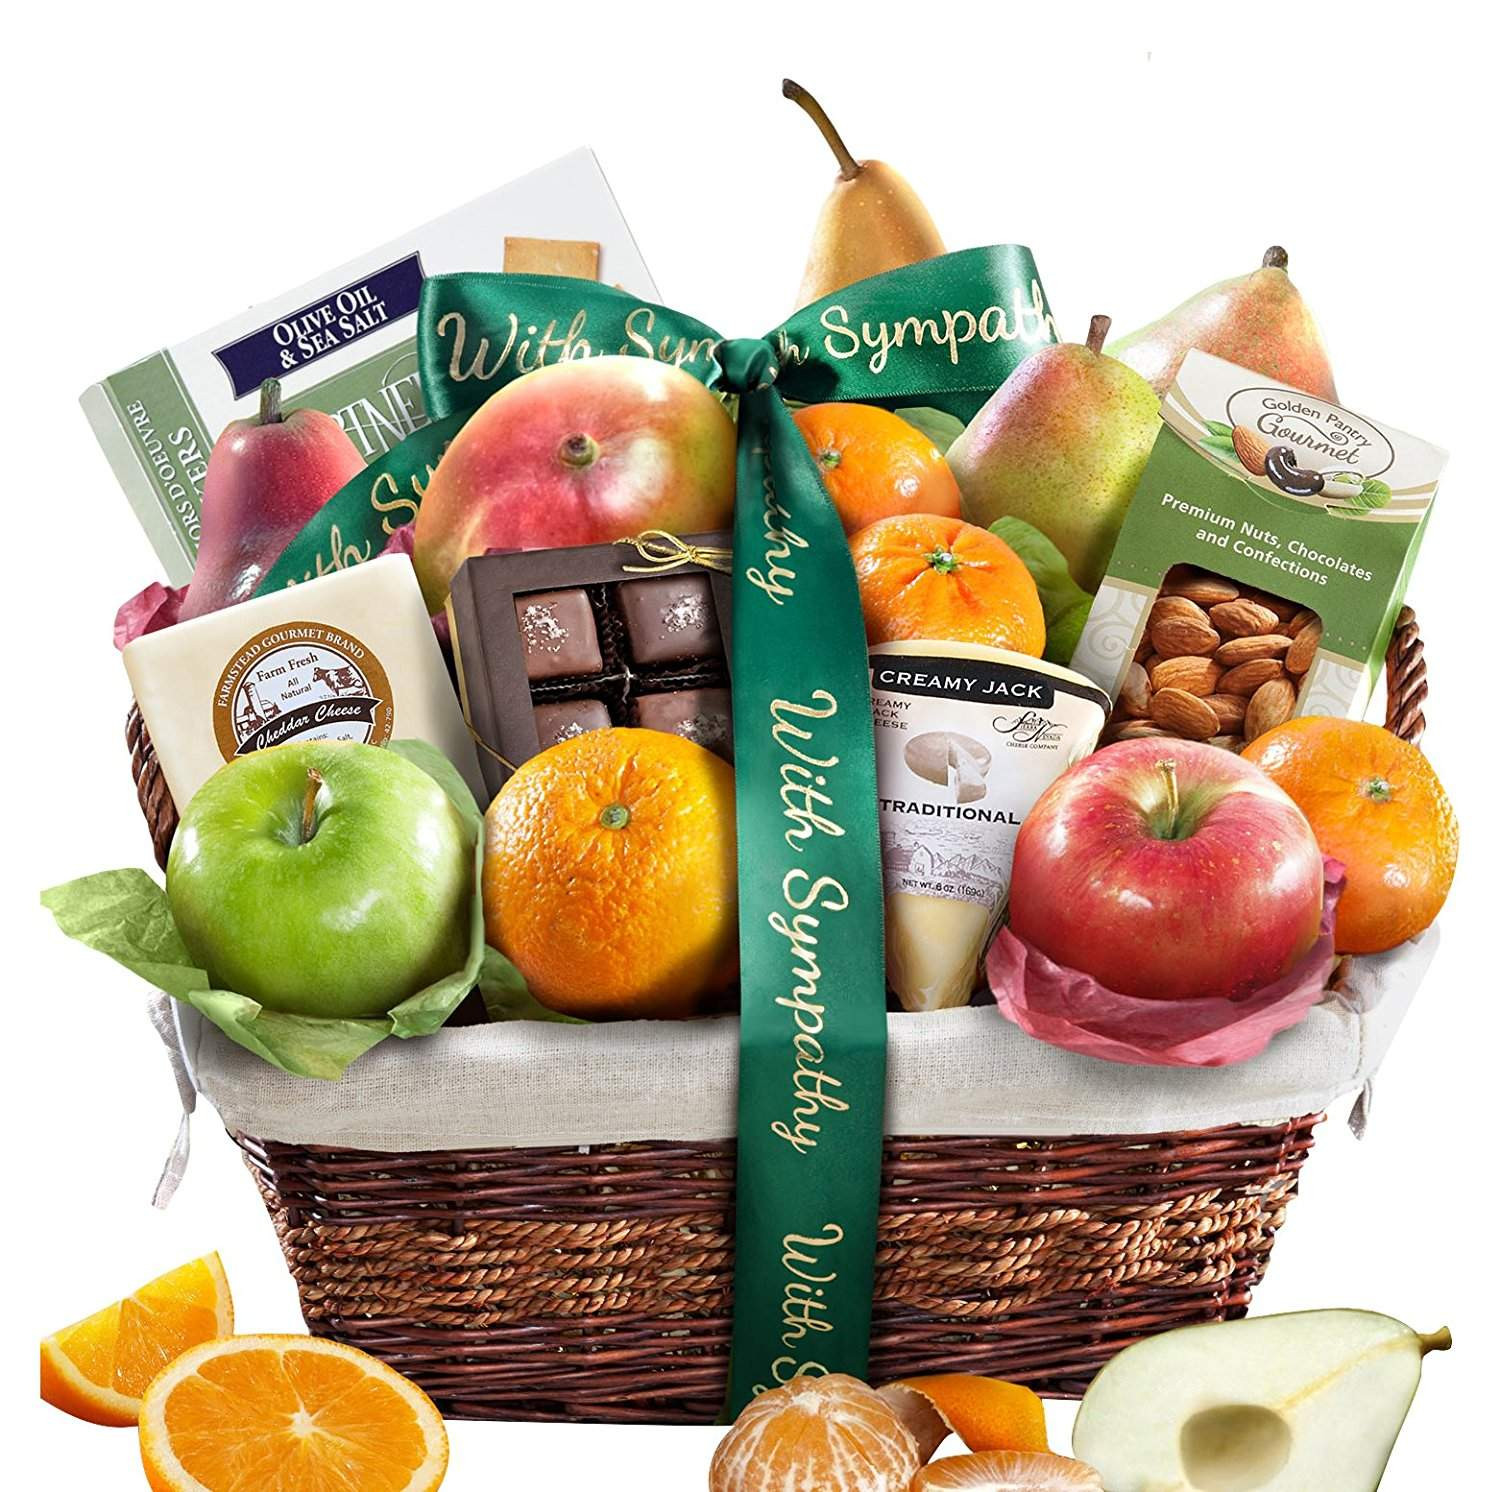 Best ideas about Sympathy Gift Ideas . Save or Pin Top 10 Best Sympathy Gift Ideas Now.